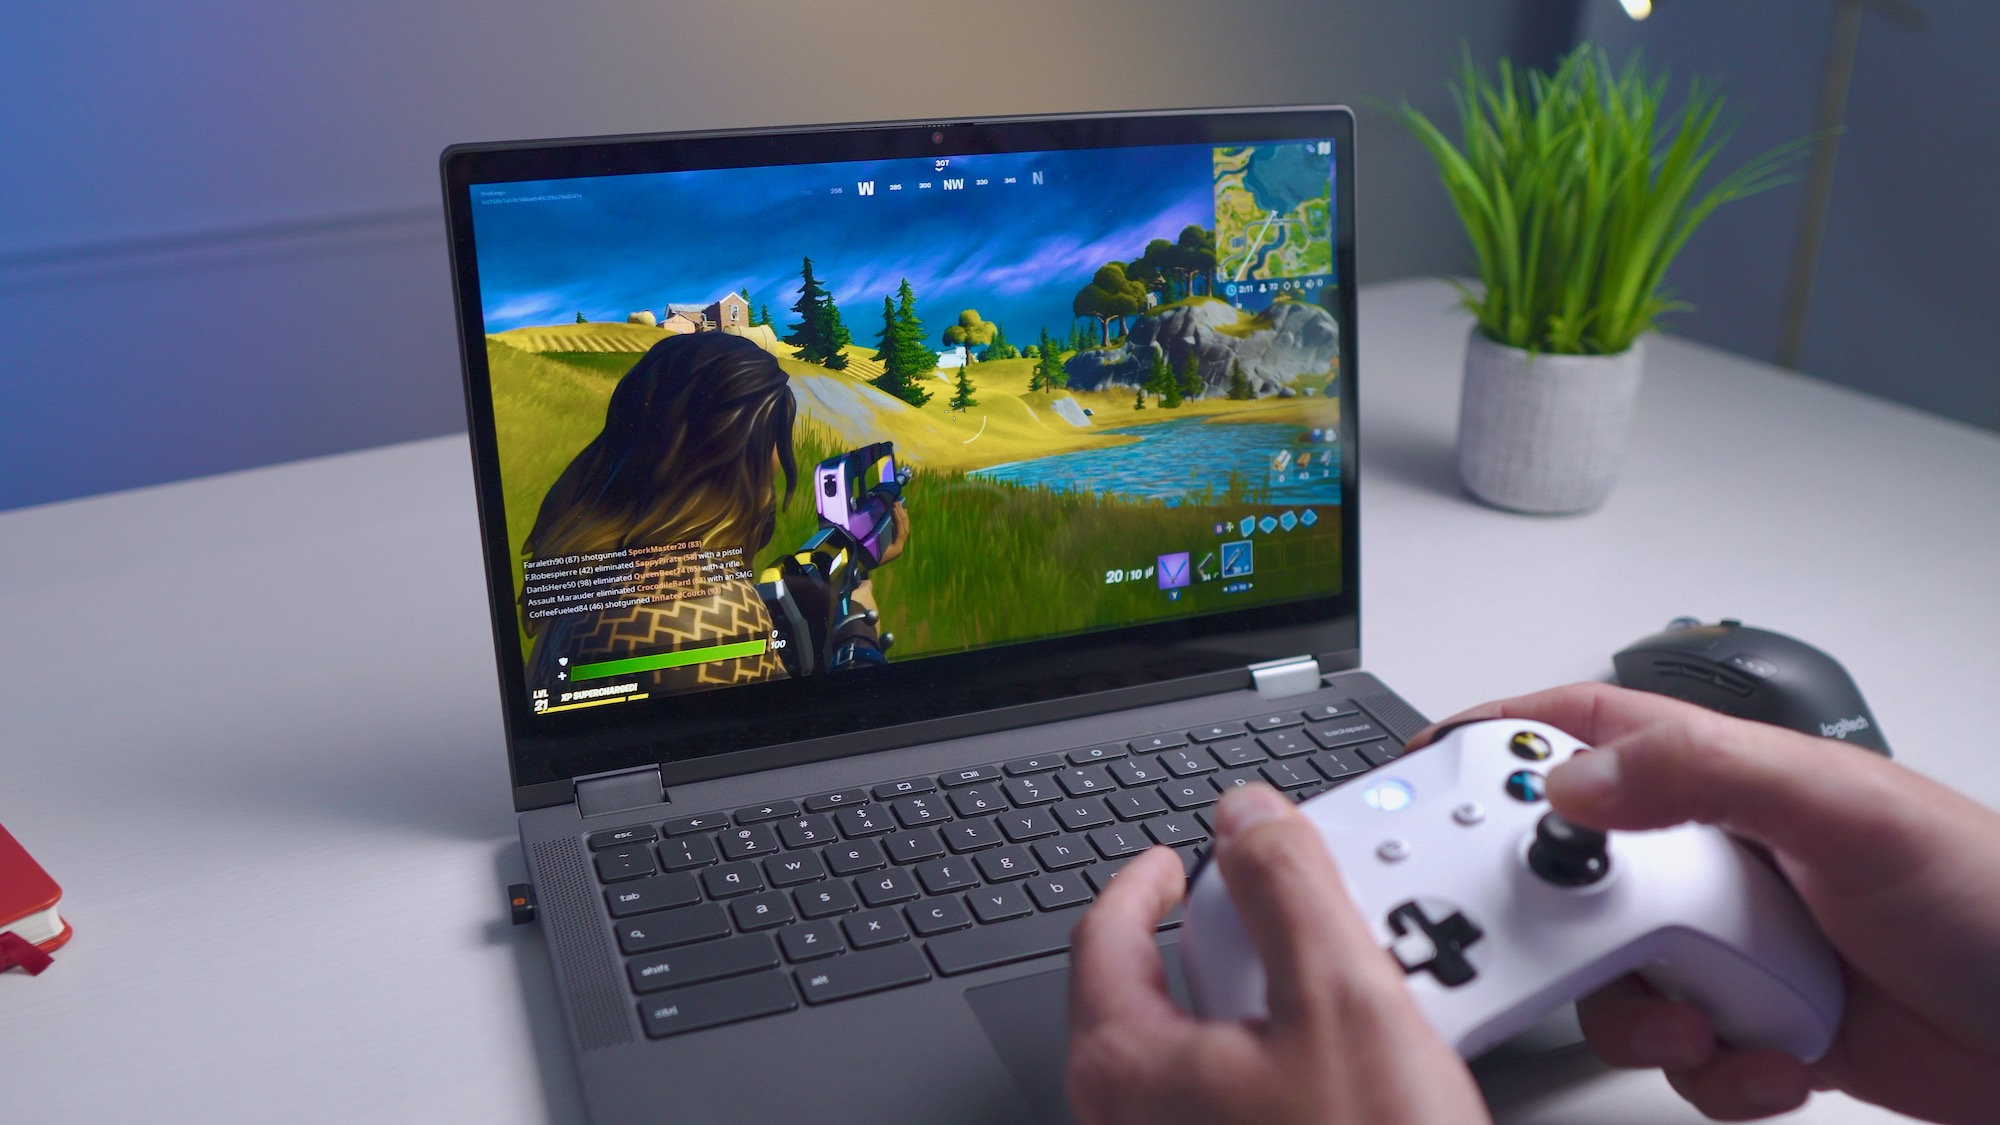 First Look: Nvidia Geforce Now brings compatibility for more than 650 high quality games to Chromebooks